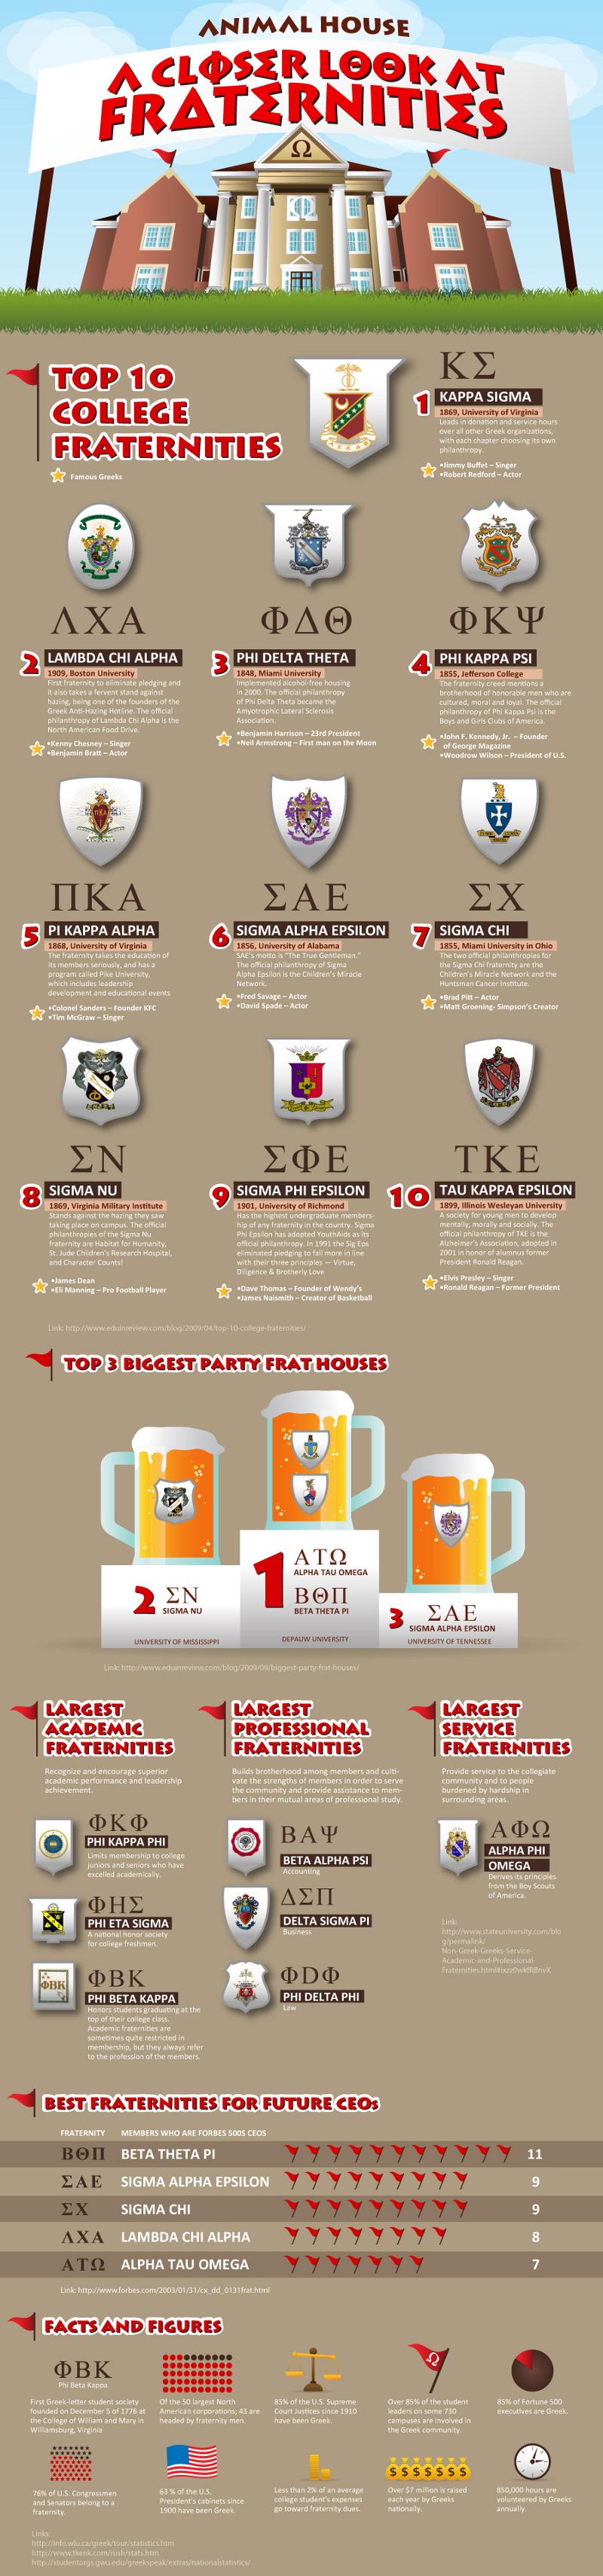 Top Fraternities in the United States